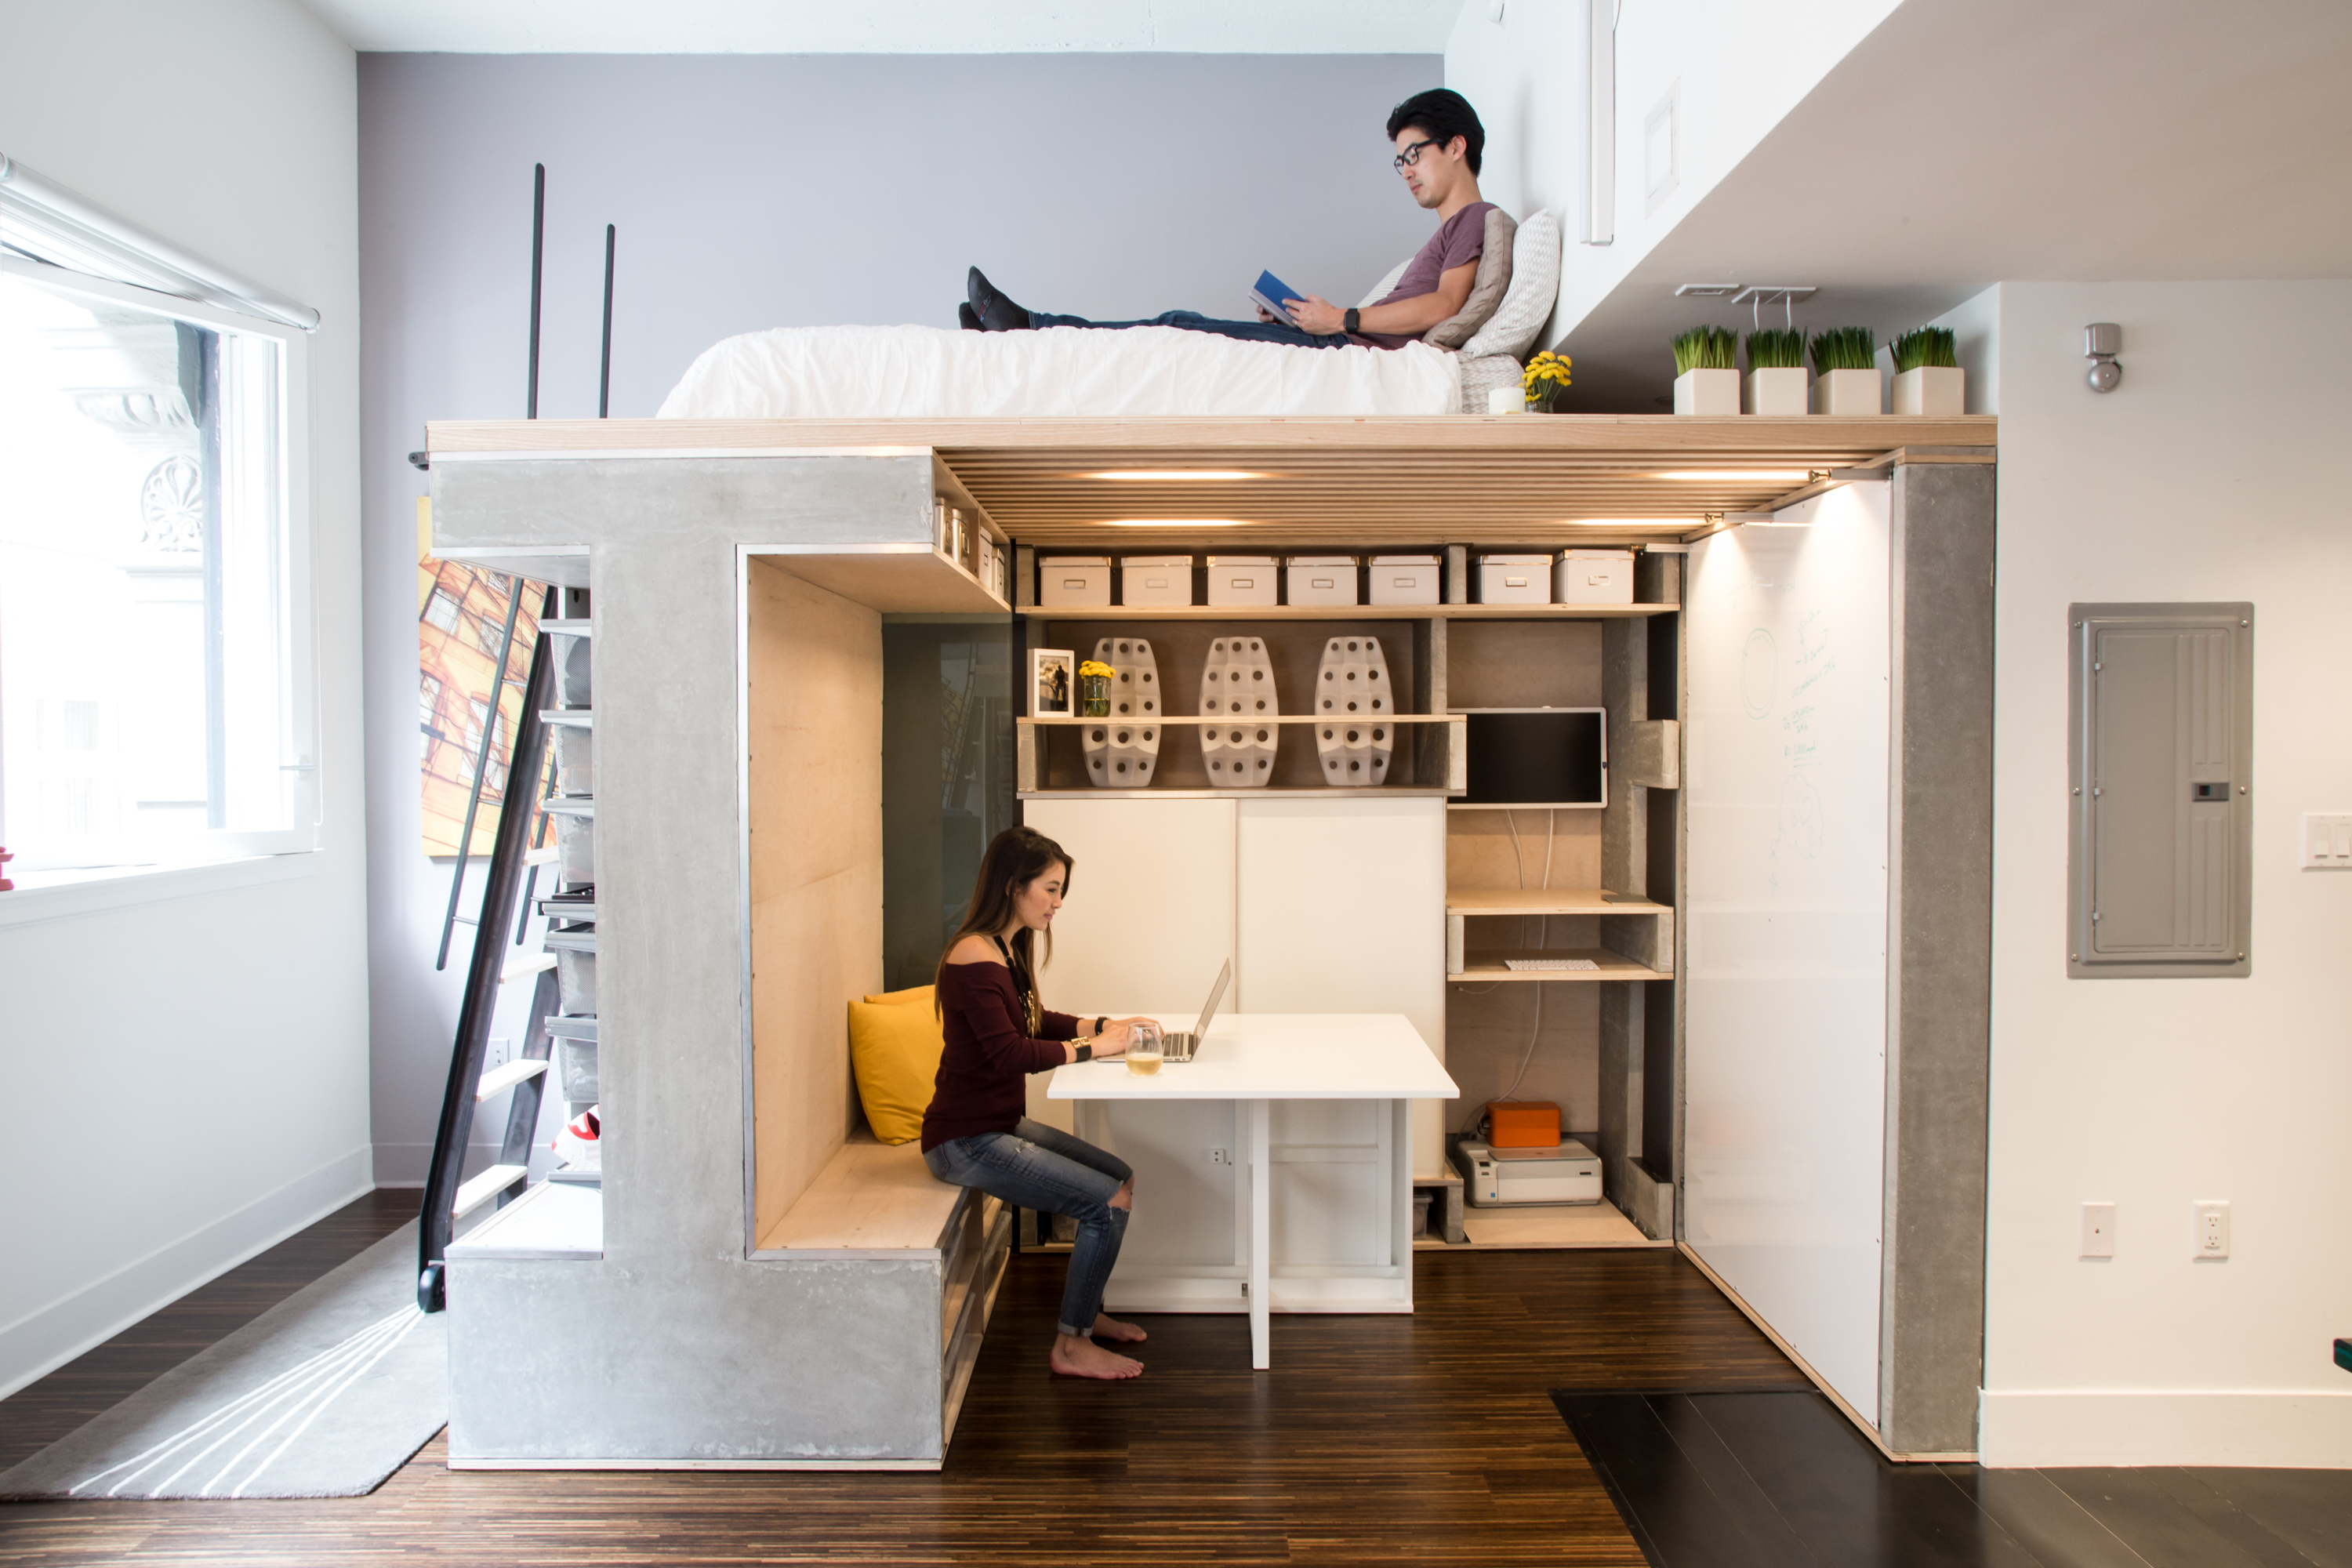 7 'apartment-in-a-box' designs for tiny spaces